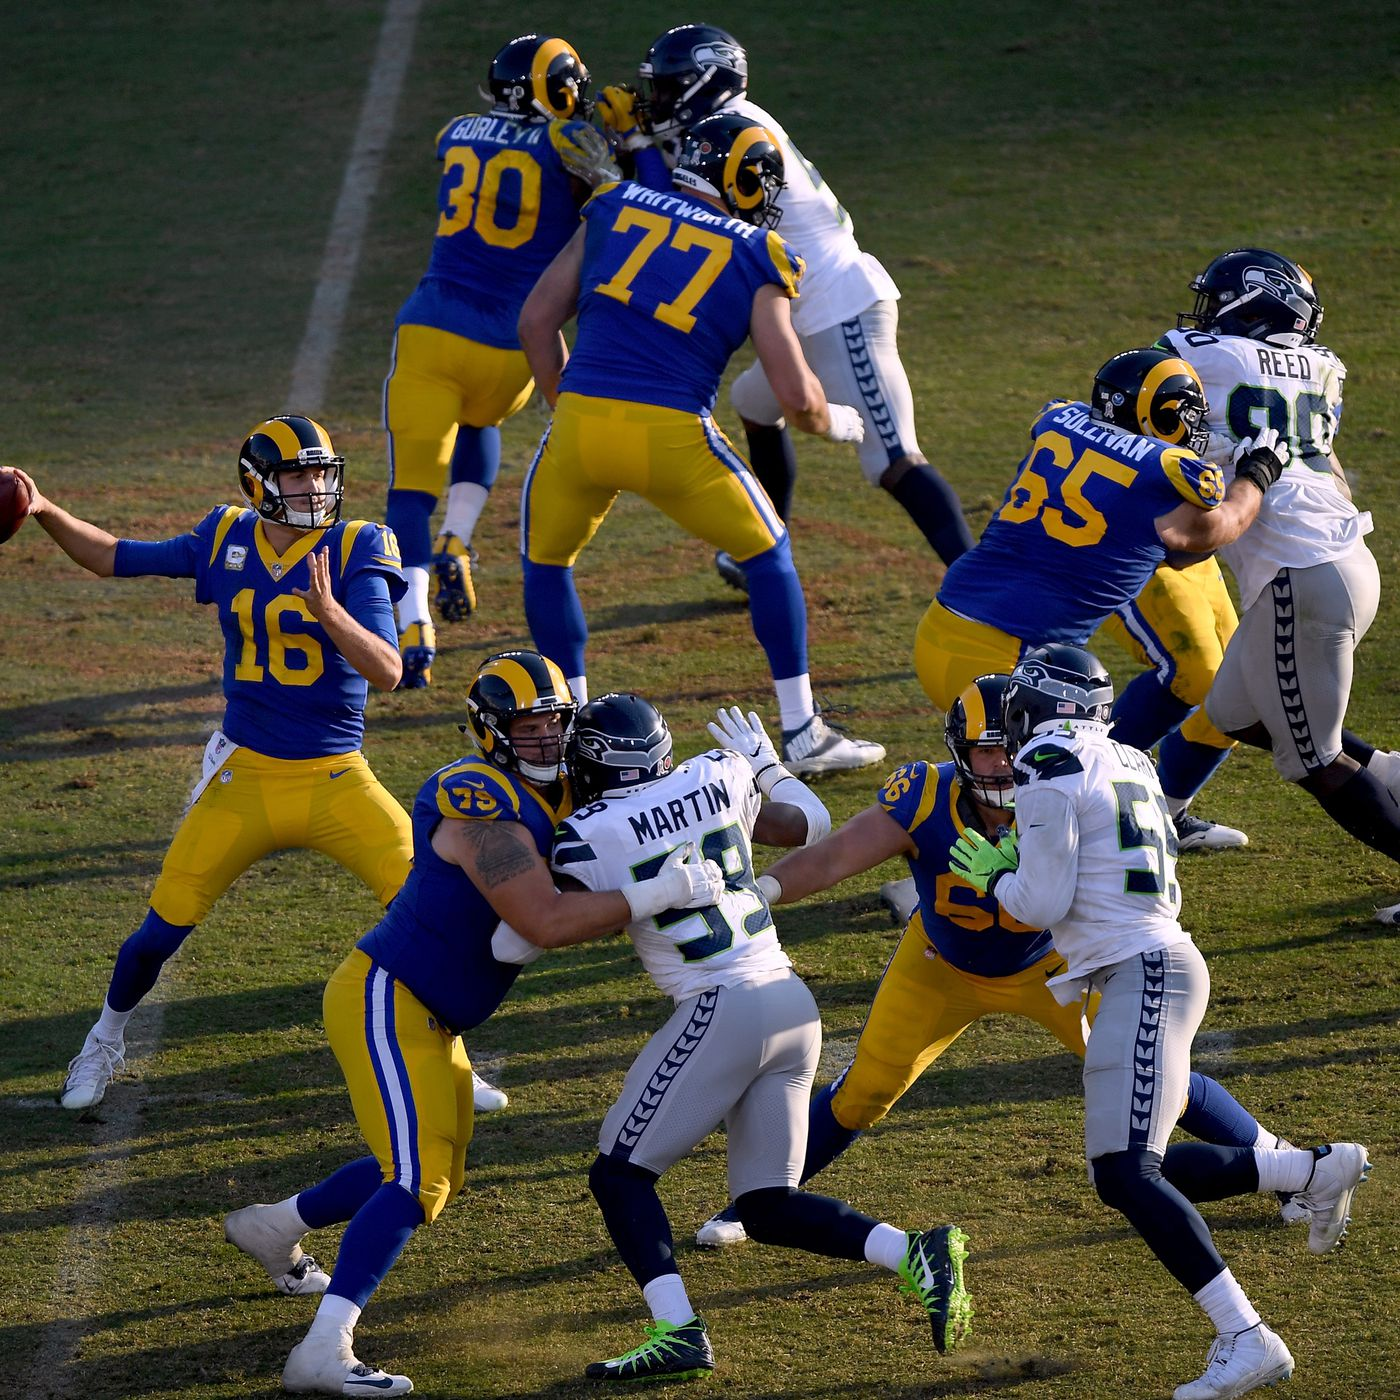 Rams Vs Seahawks Time Online Streaming Channel Tickets And More Turf Show Times